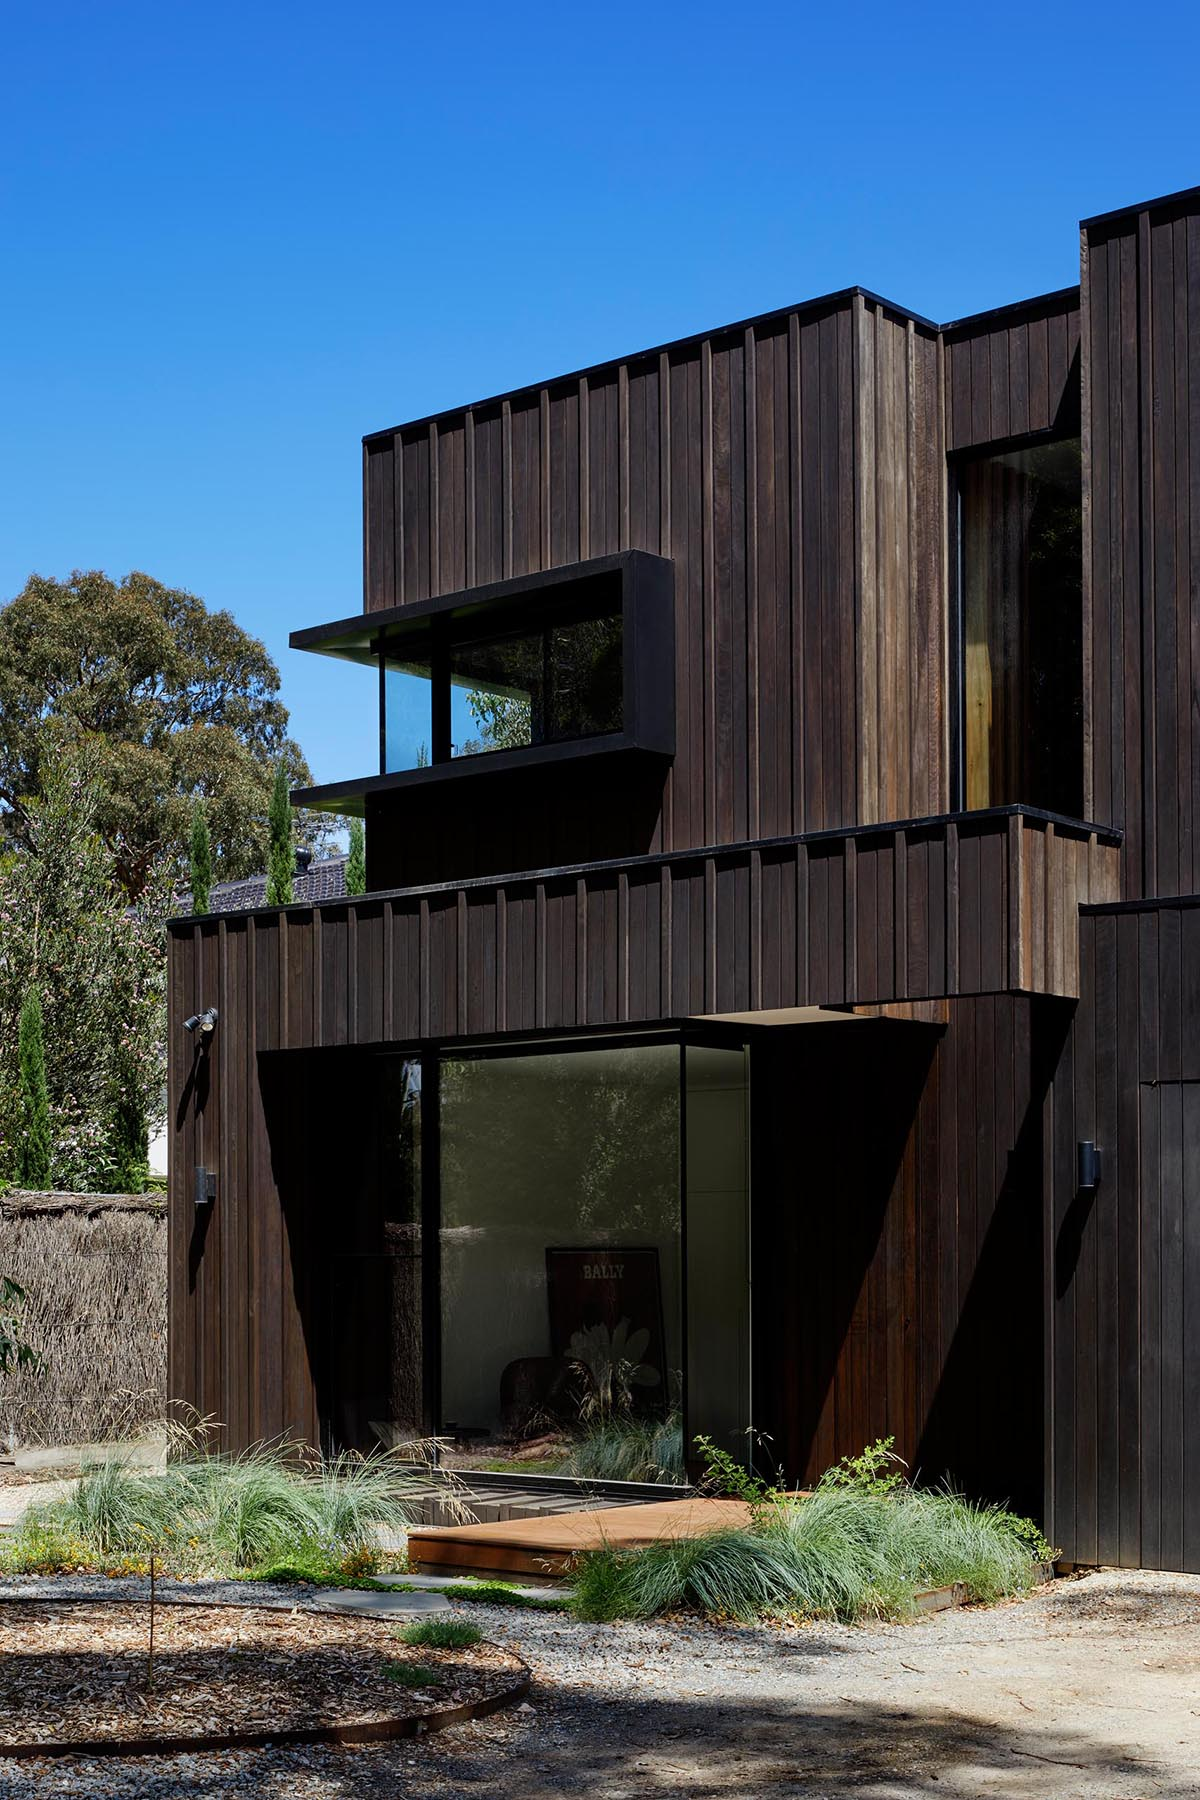 The exterior of this modern home showcases Blackbutt timber cladding that's accented by black metal window frames.